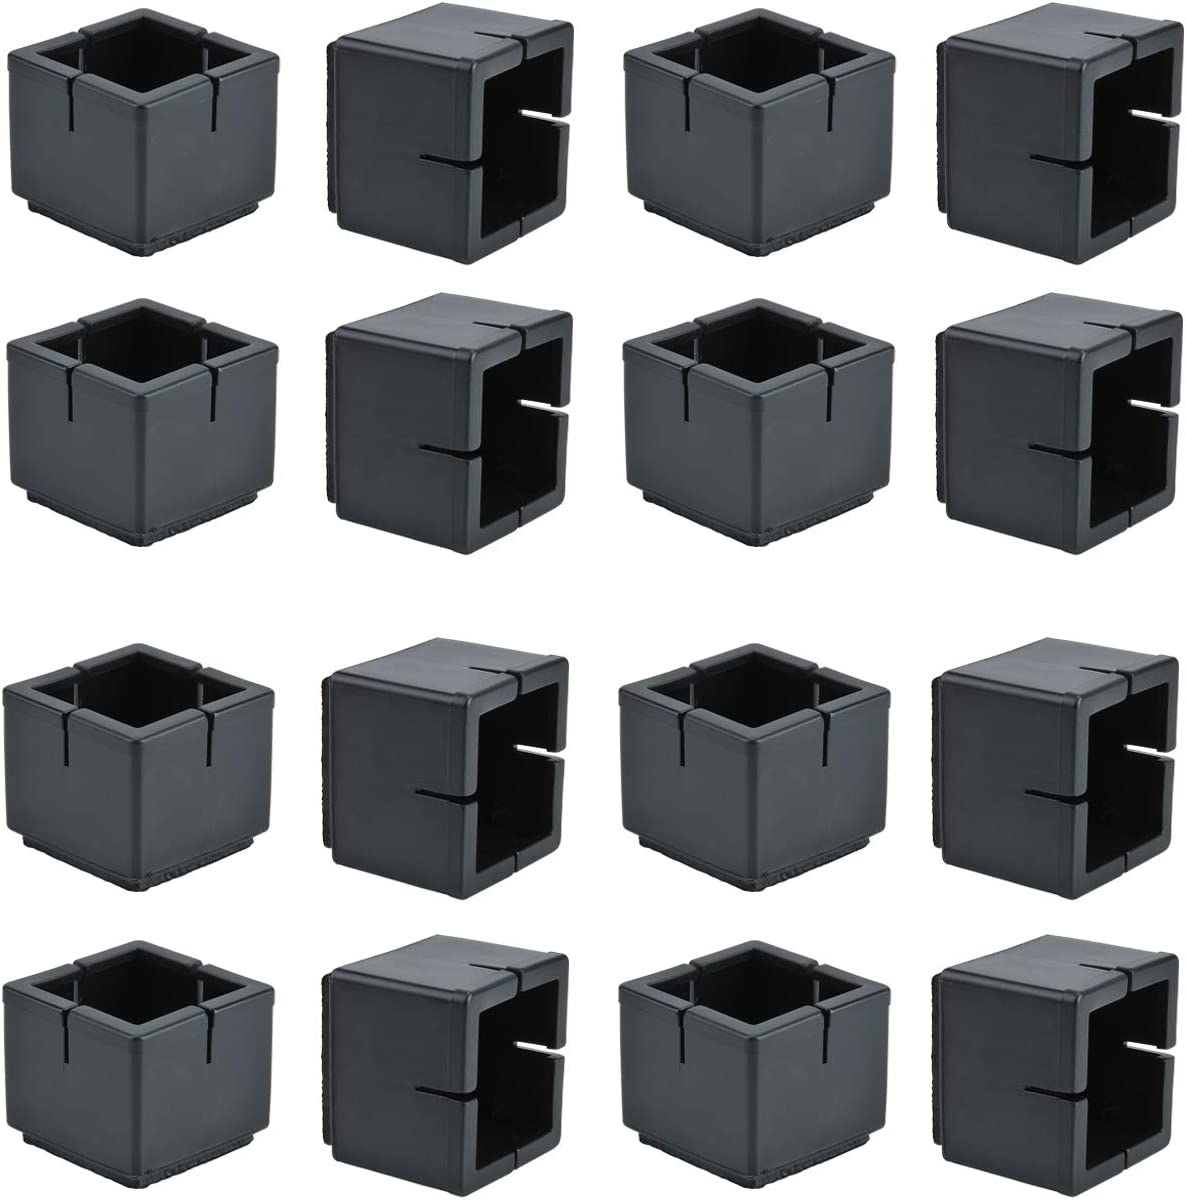 Chair Leg Floor Protectors, WarmHut 16pcs Black Silicone Table Furniture Leg Feet Tips Covers Caps, Felt Pads, Prevent Scratches, Wood Floor Protector (Square)(Black)